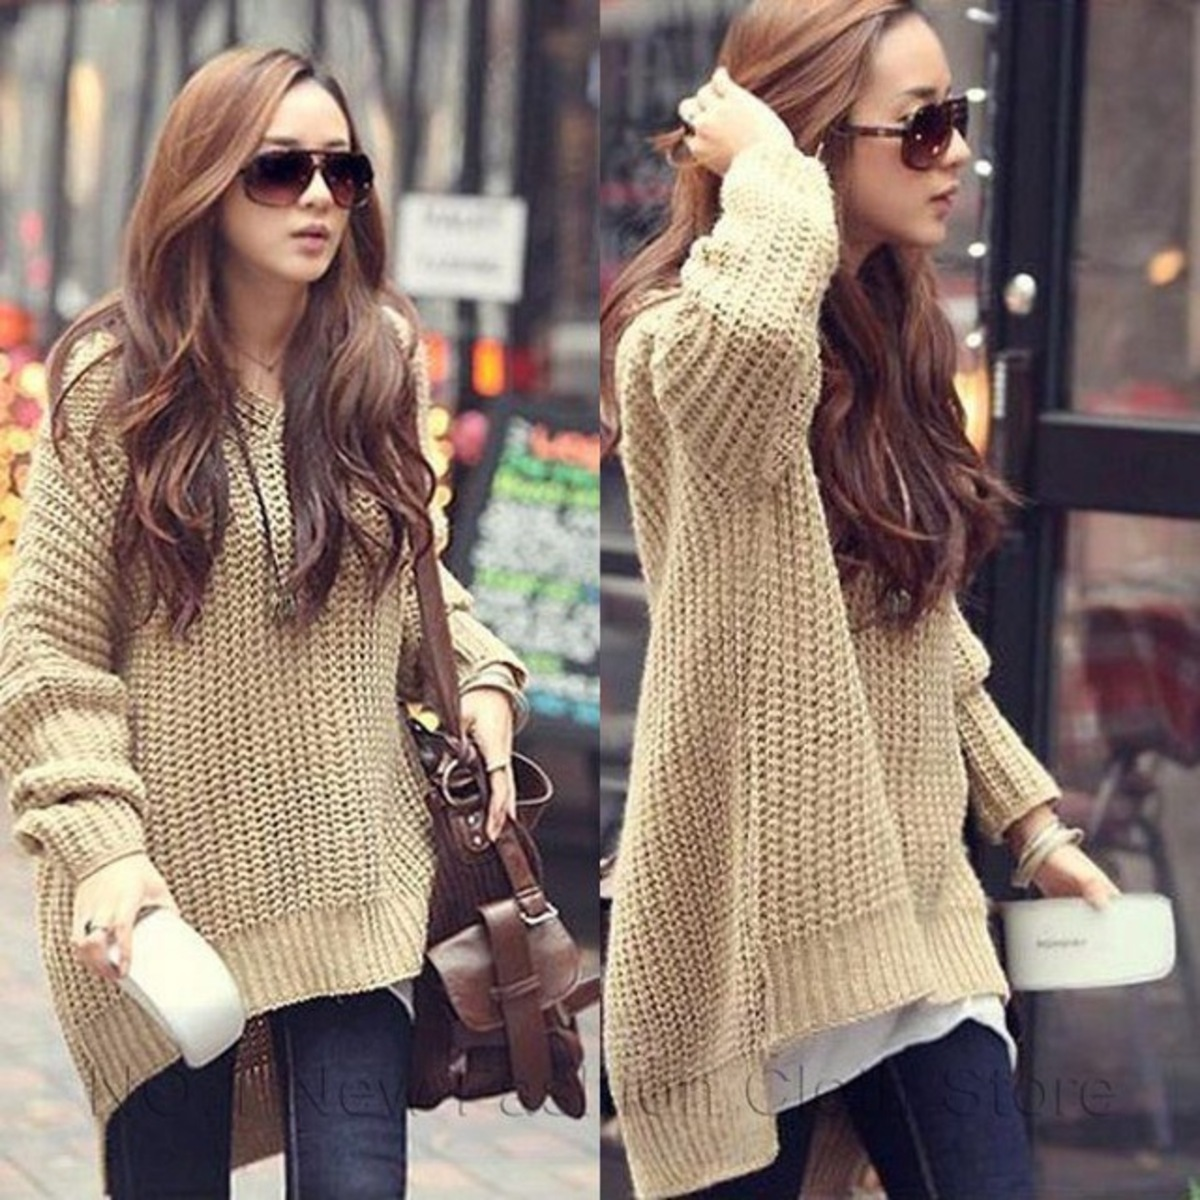 Batwing-Pullover-New-Fashion-Womens-Loose-Hooded-Sweater-Lady-Long-Jumper-Asymmetrical-Winter-Knitted-Clothing-nz129.jpg_640x640